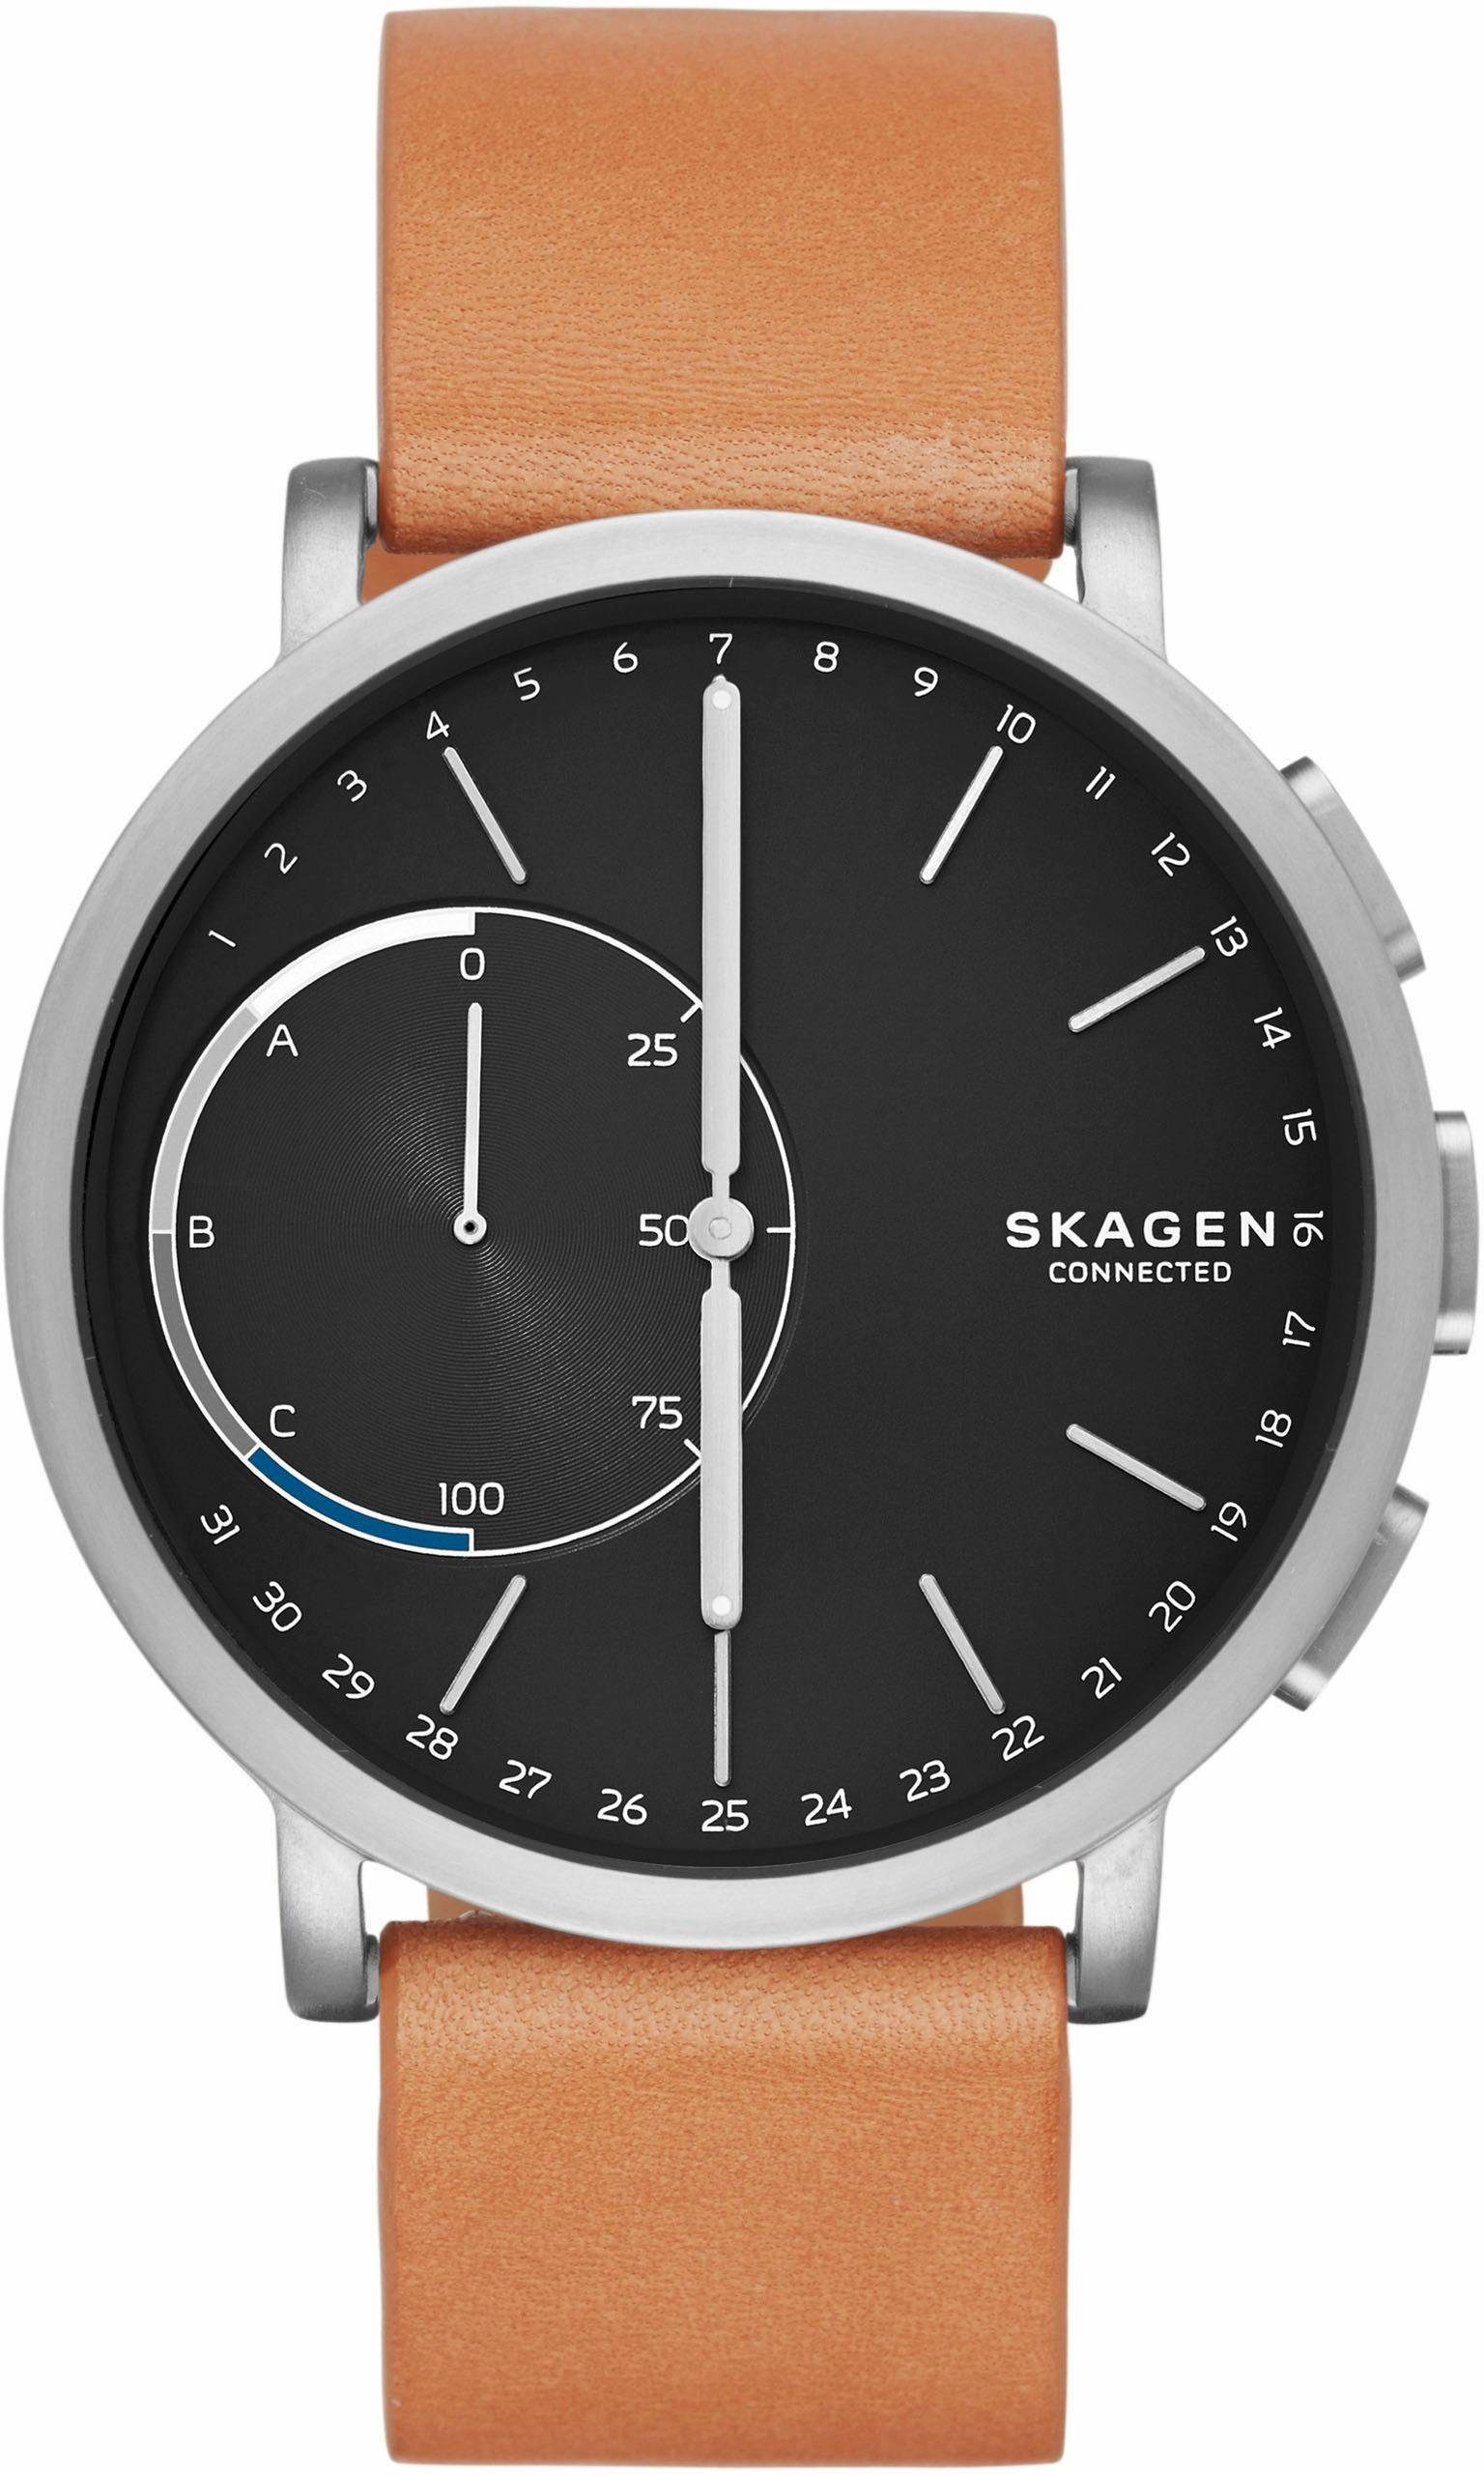 SKAGEN CONNECTED HAGEN CONNECTED, SKT1104 Smartwatch (Android Wear)